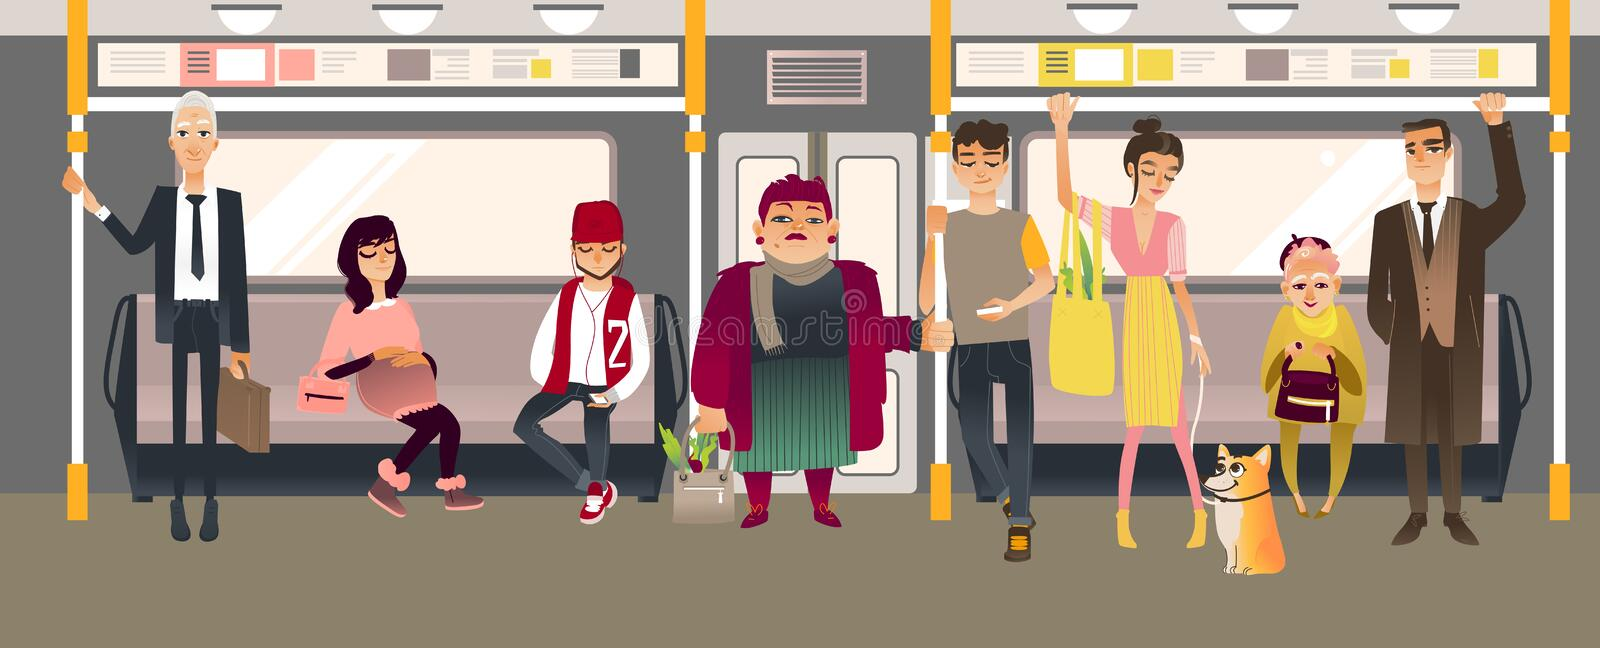 People in subway inside train sitting, standing and holding on to handrails while riding in underground rail car. Cartoon vector illustration of men and women stock illustration